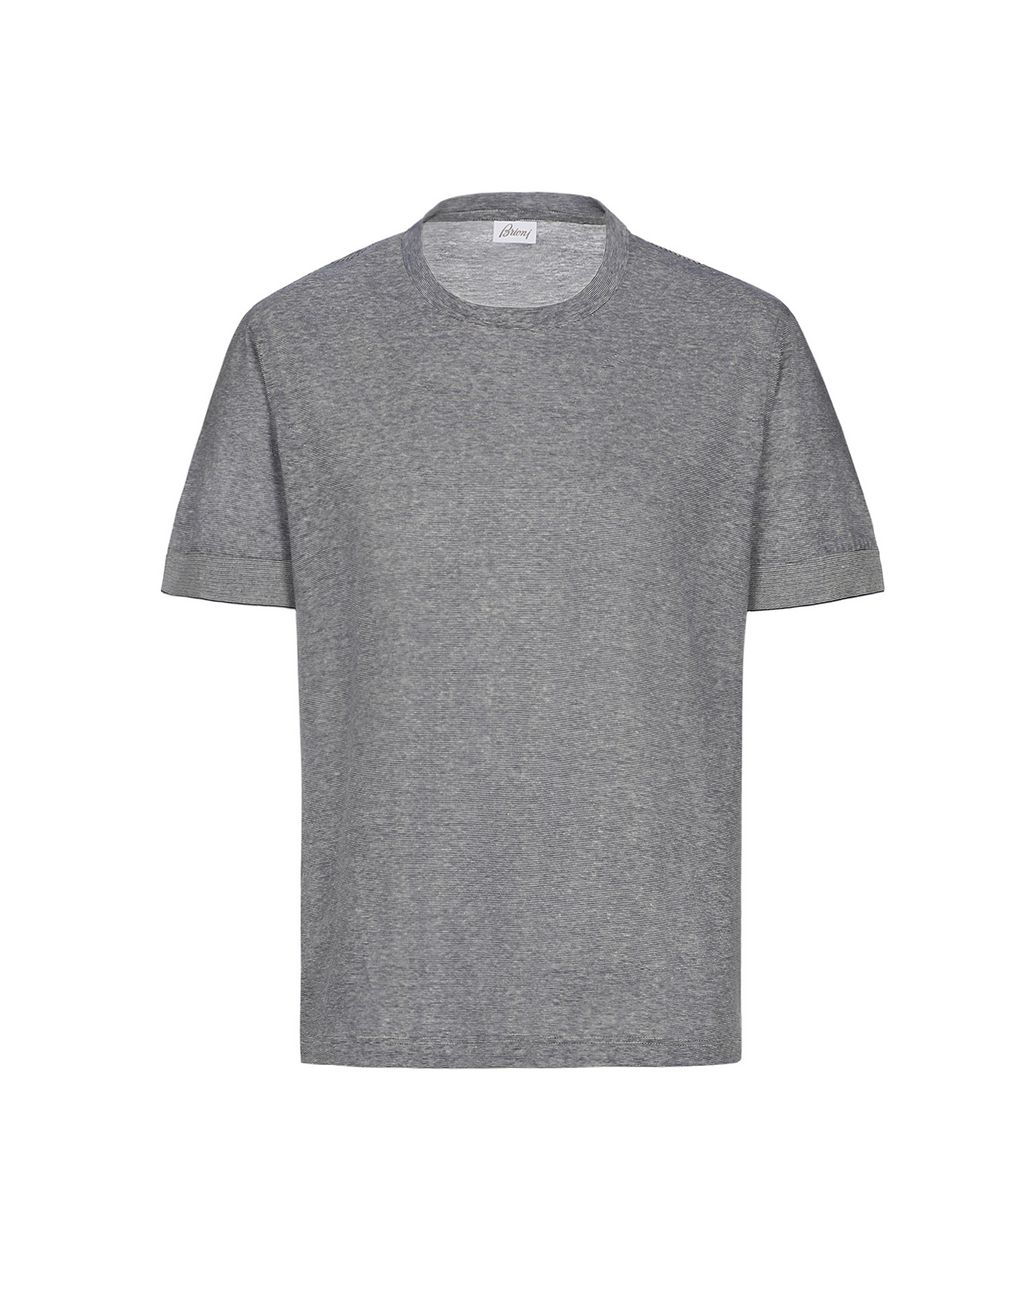 BRIONI Blue and White Thin Stripes T-Shirt T-Shirts & Polos Man f